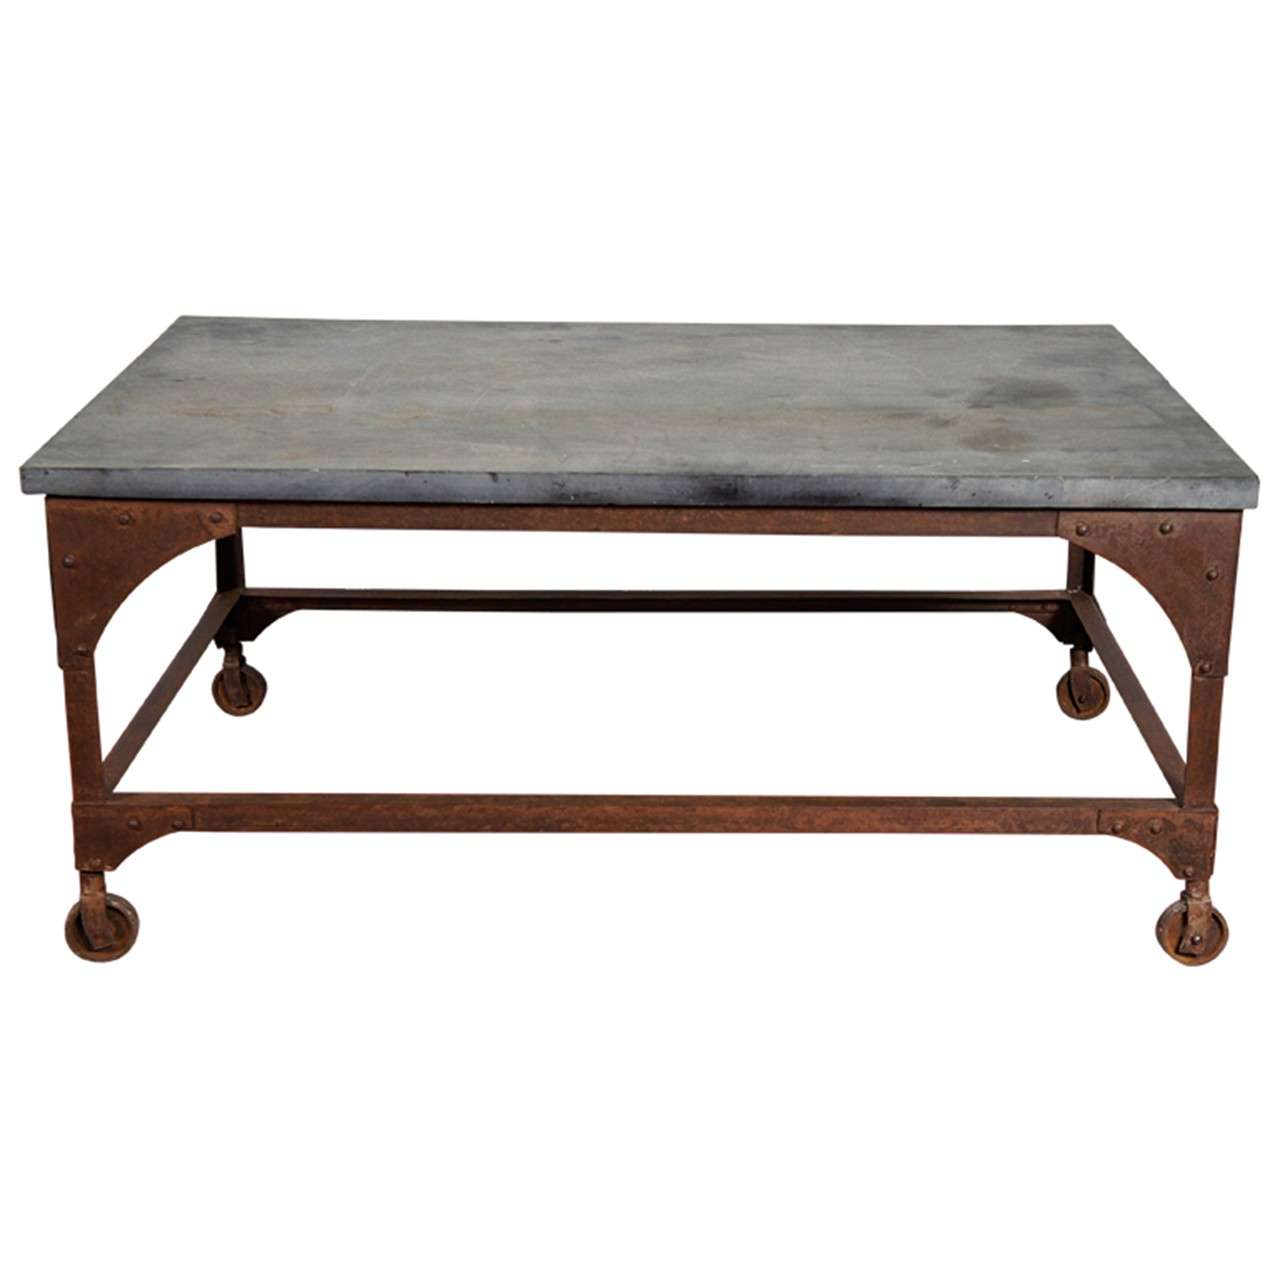 Blue stone coffee table santaconapp Stone coffee table